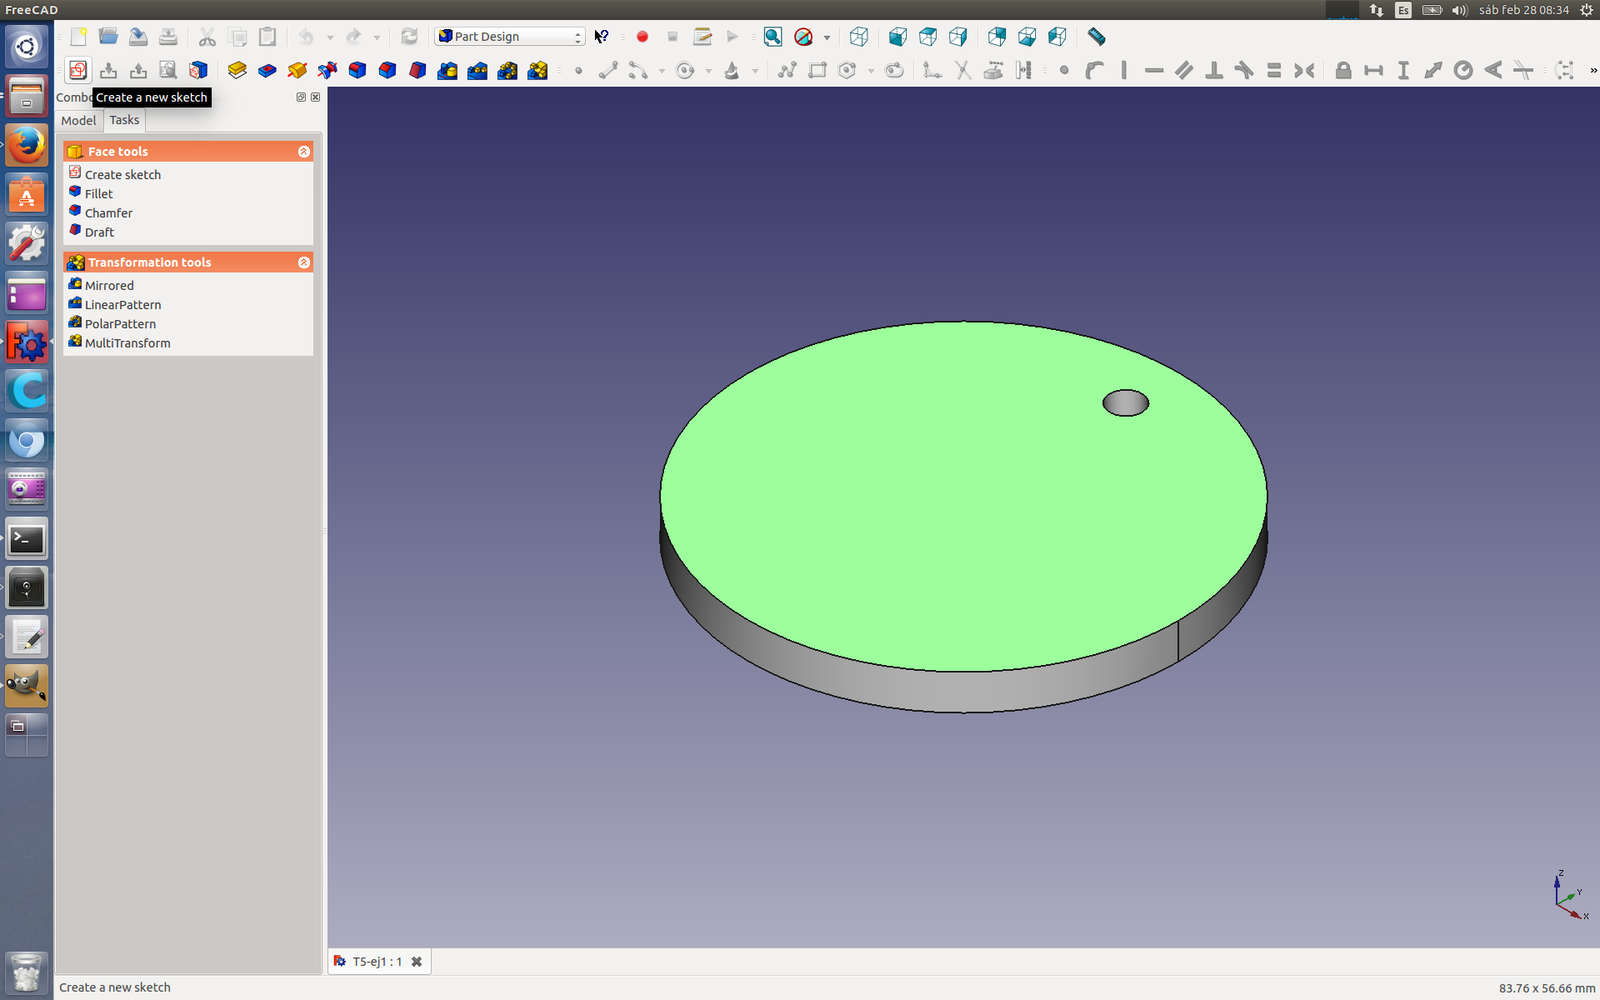 Index of /wiki/images/thumb/8/8a/Github-freecad-T5-exp-7 png